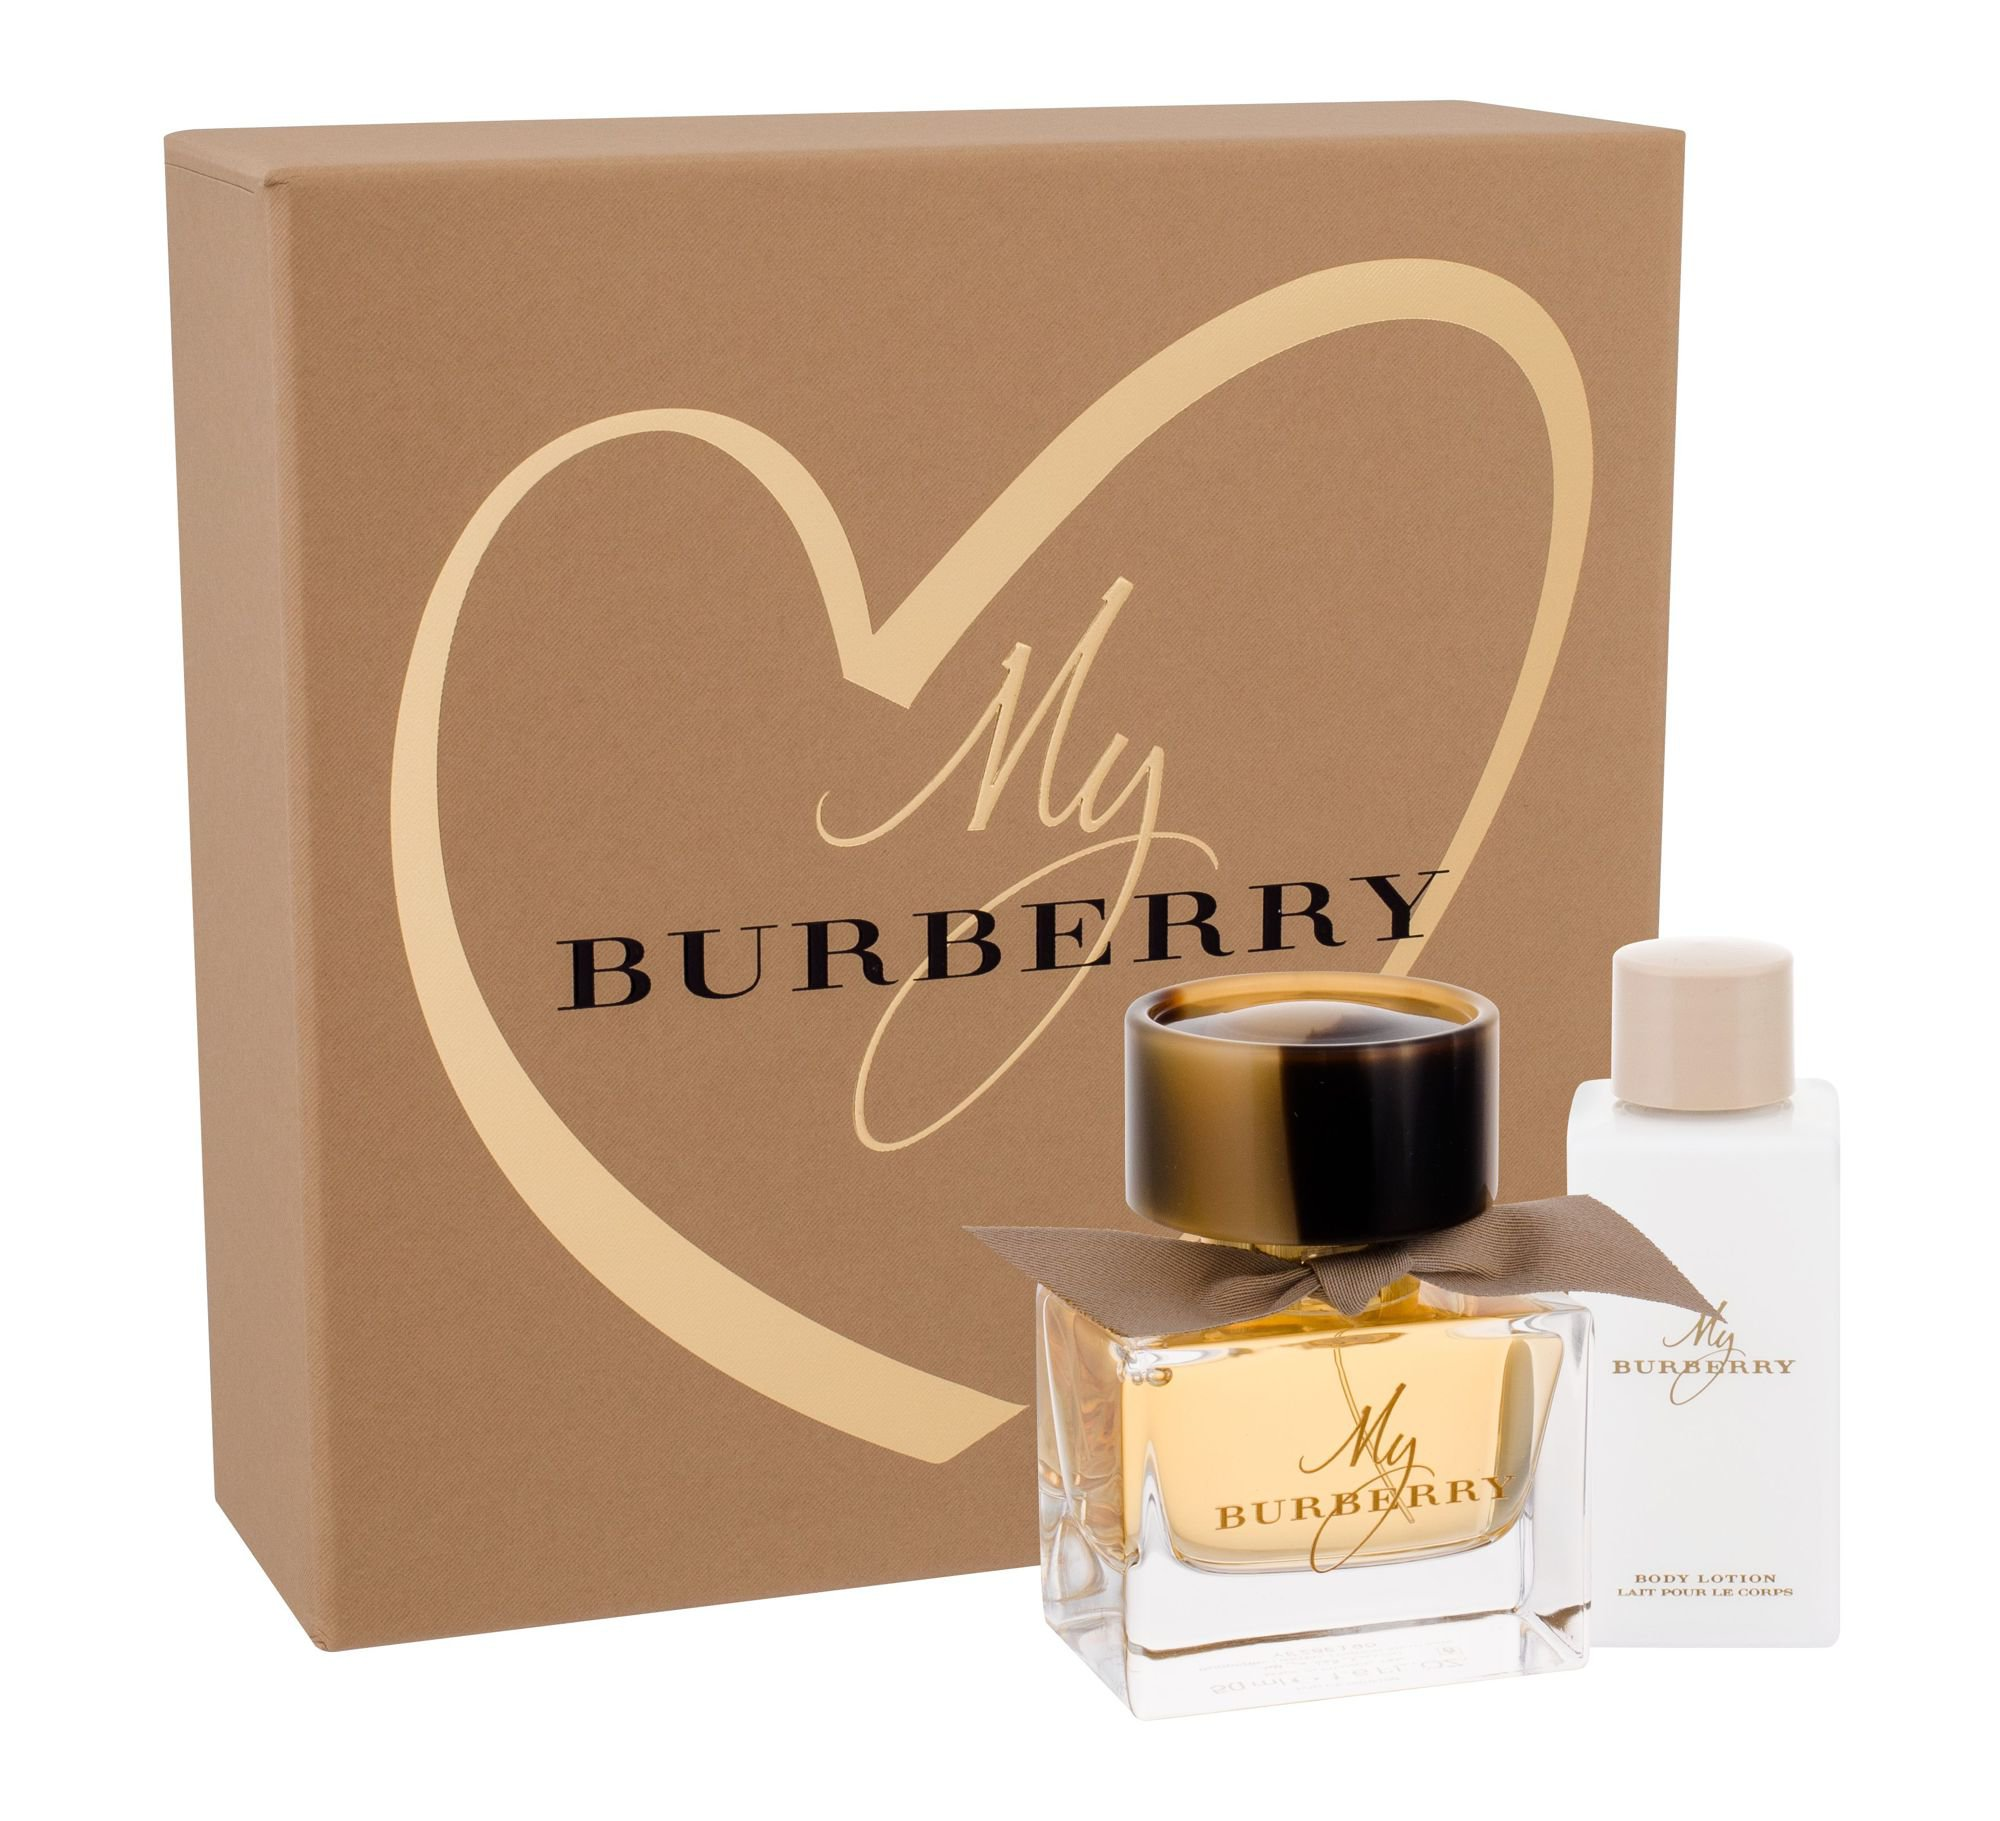 Burberry My Burberry, parfumovaná voda 50 ml + telové mlieko 75 ml